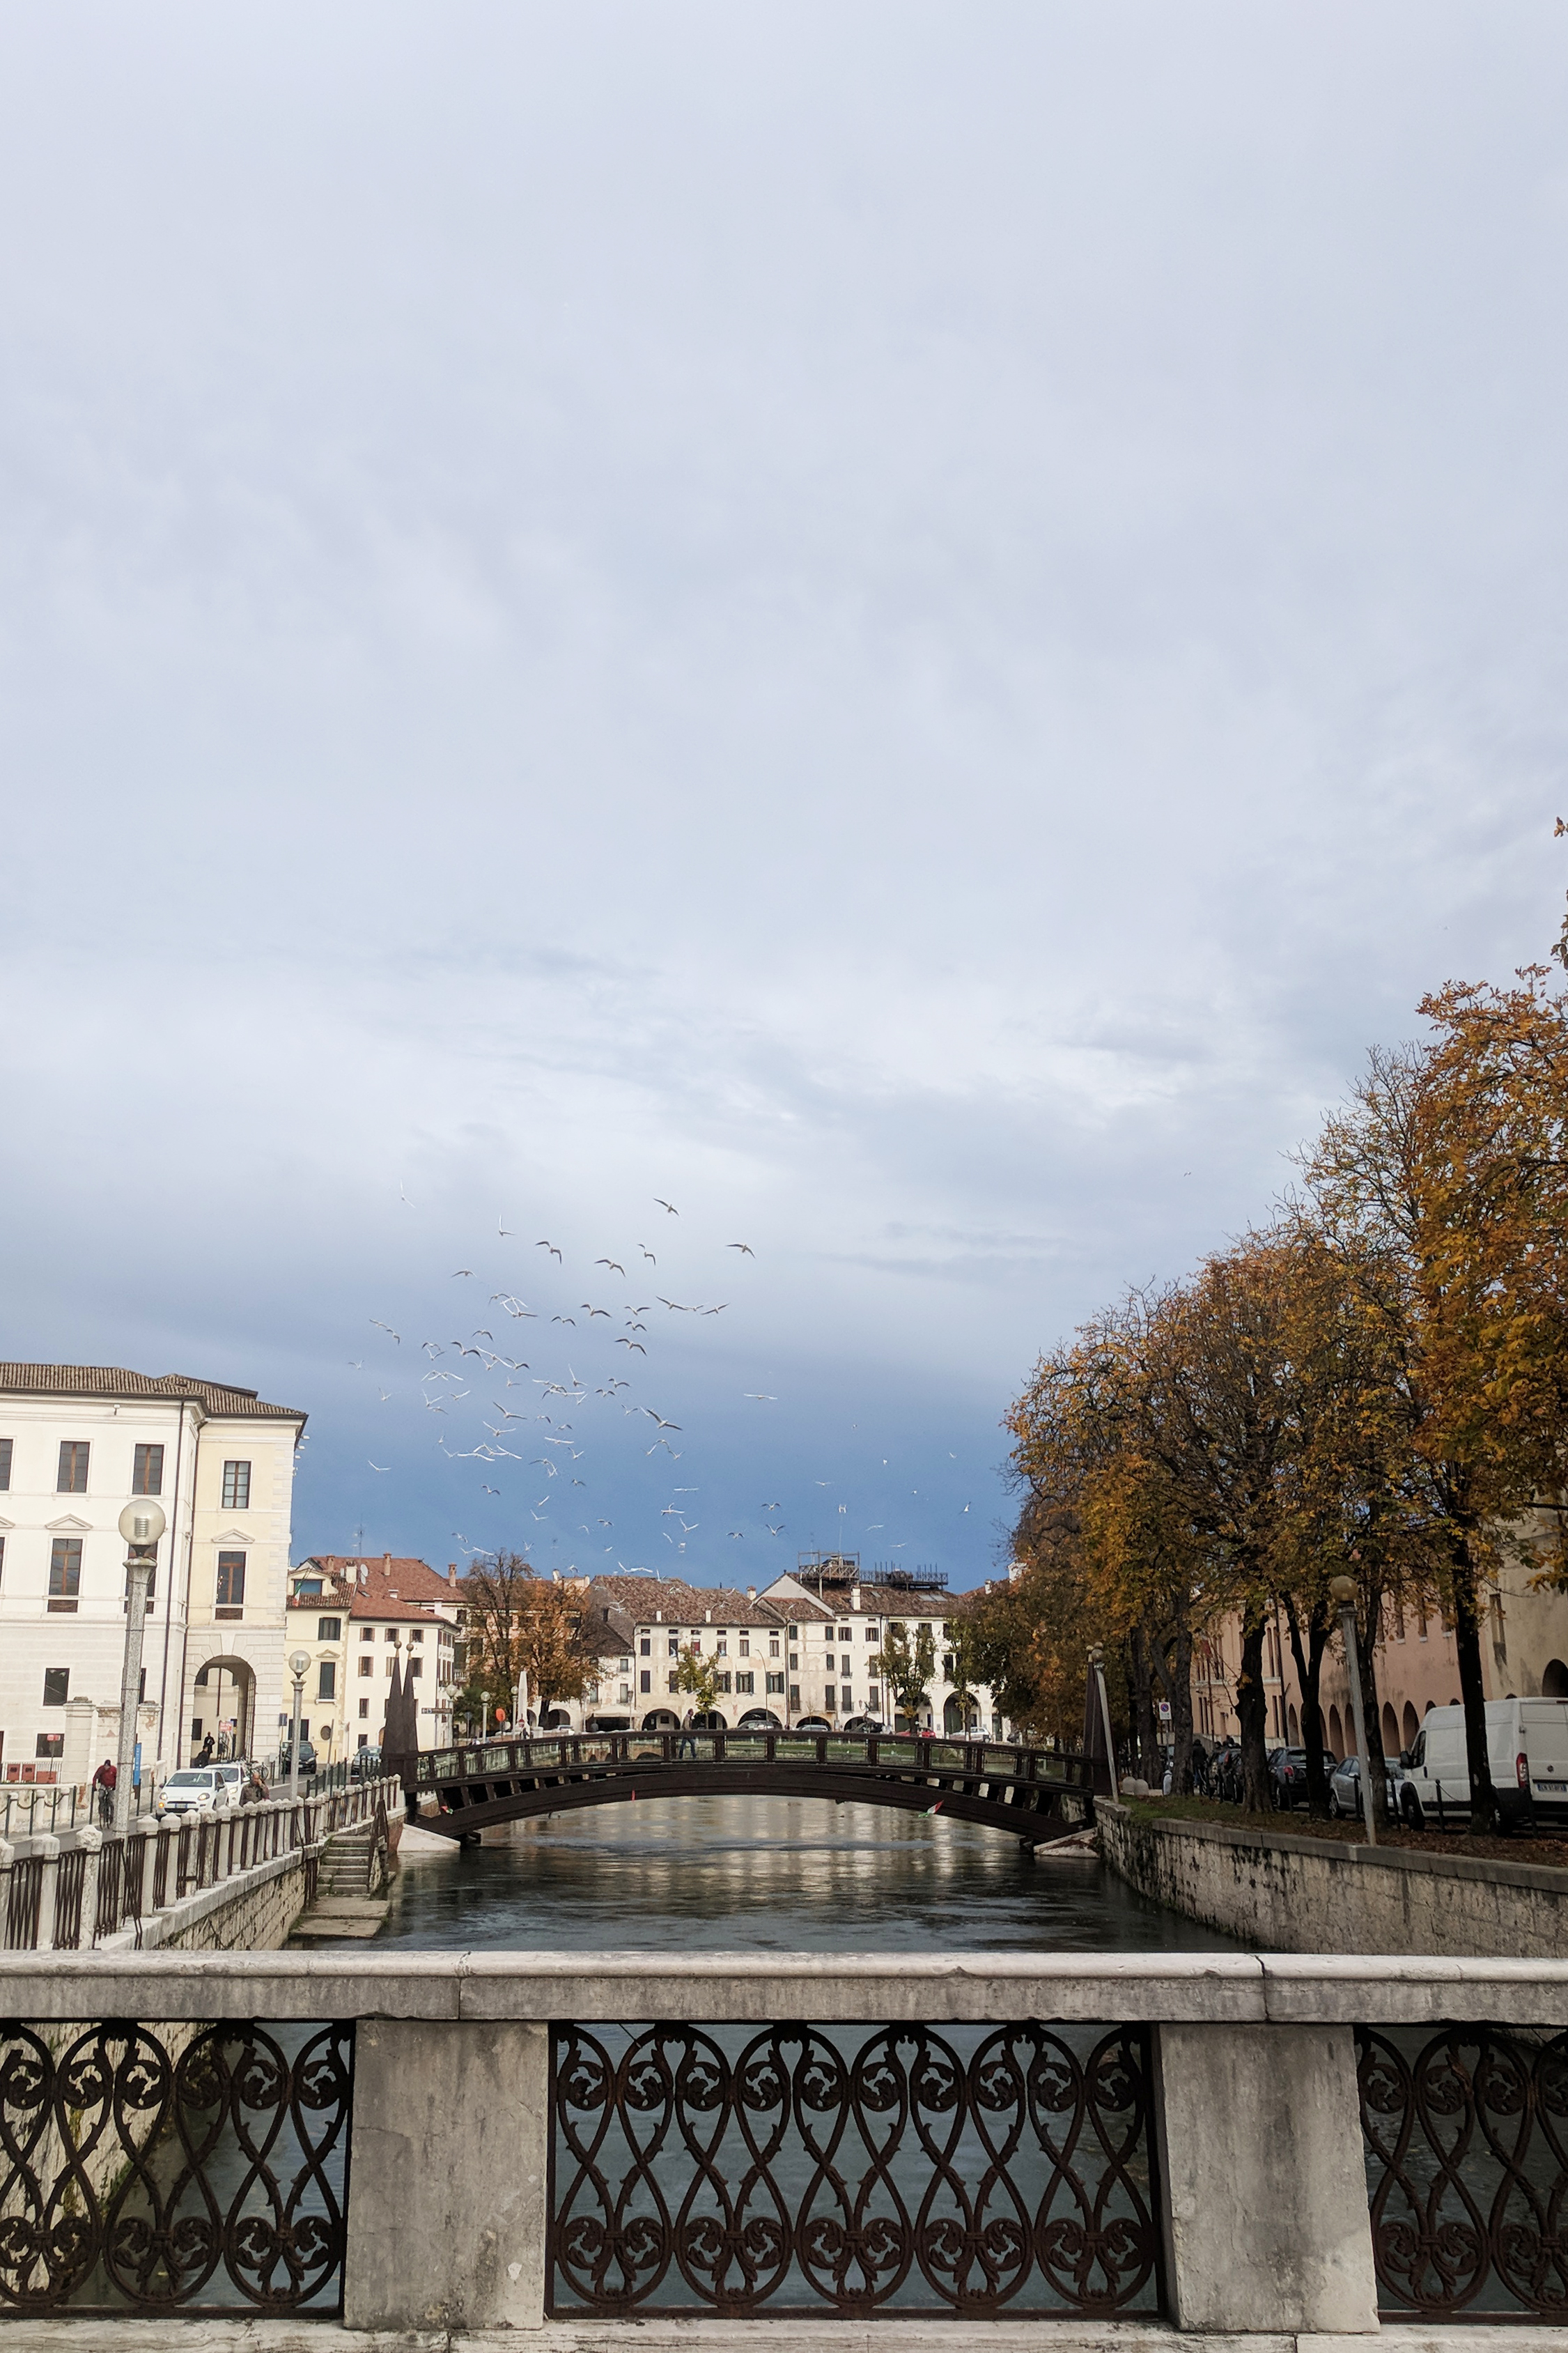 Canal in Treviso Italy with birds flying over. Image by Jamie House of Jamie House Design